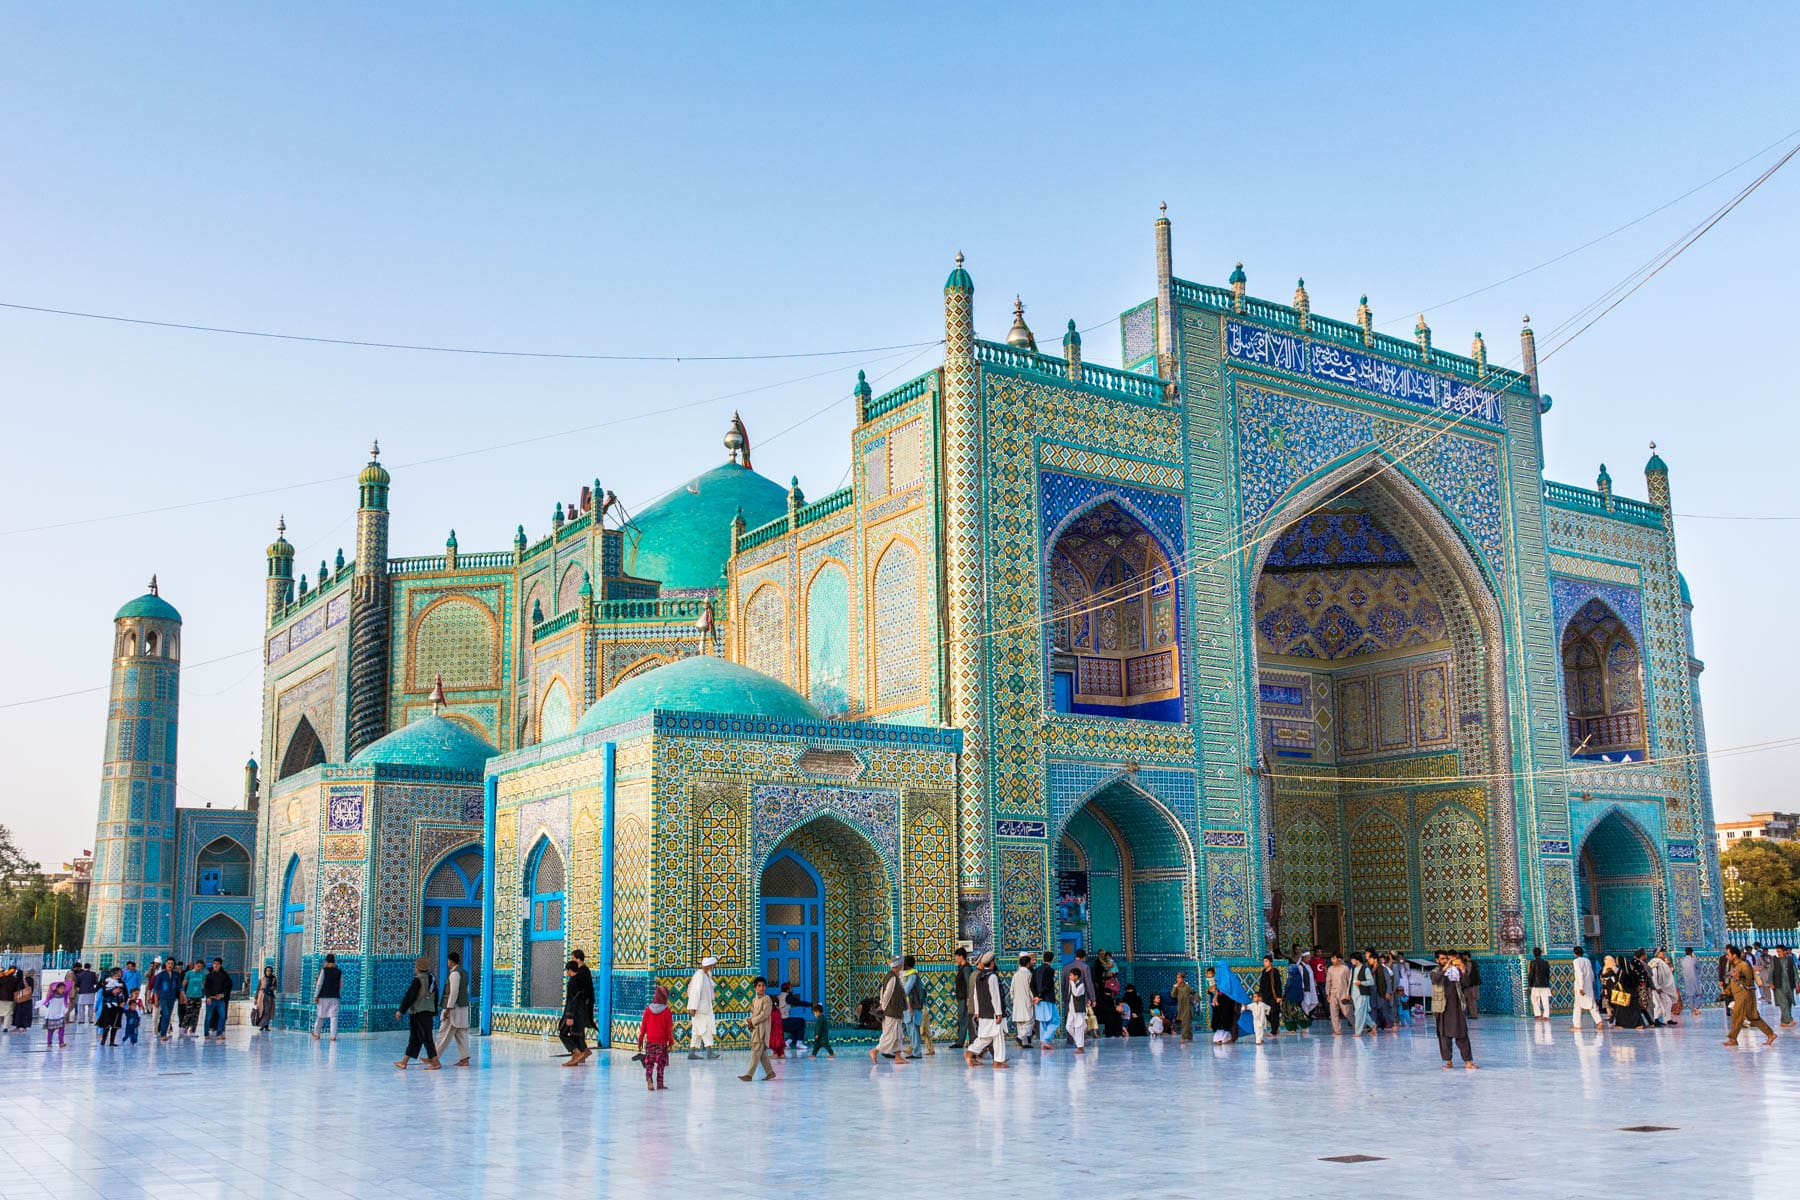 Photos of Mazar-i-Sharif, Afghanistan - Crowds at the Blue Mosque in Mazar at sunset - Lost With Purpose